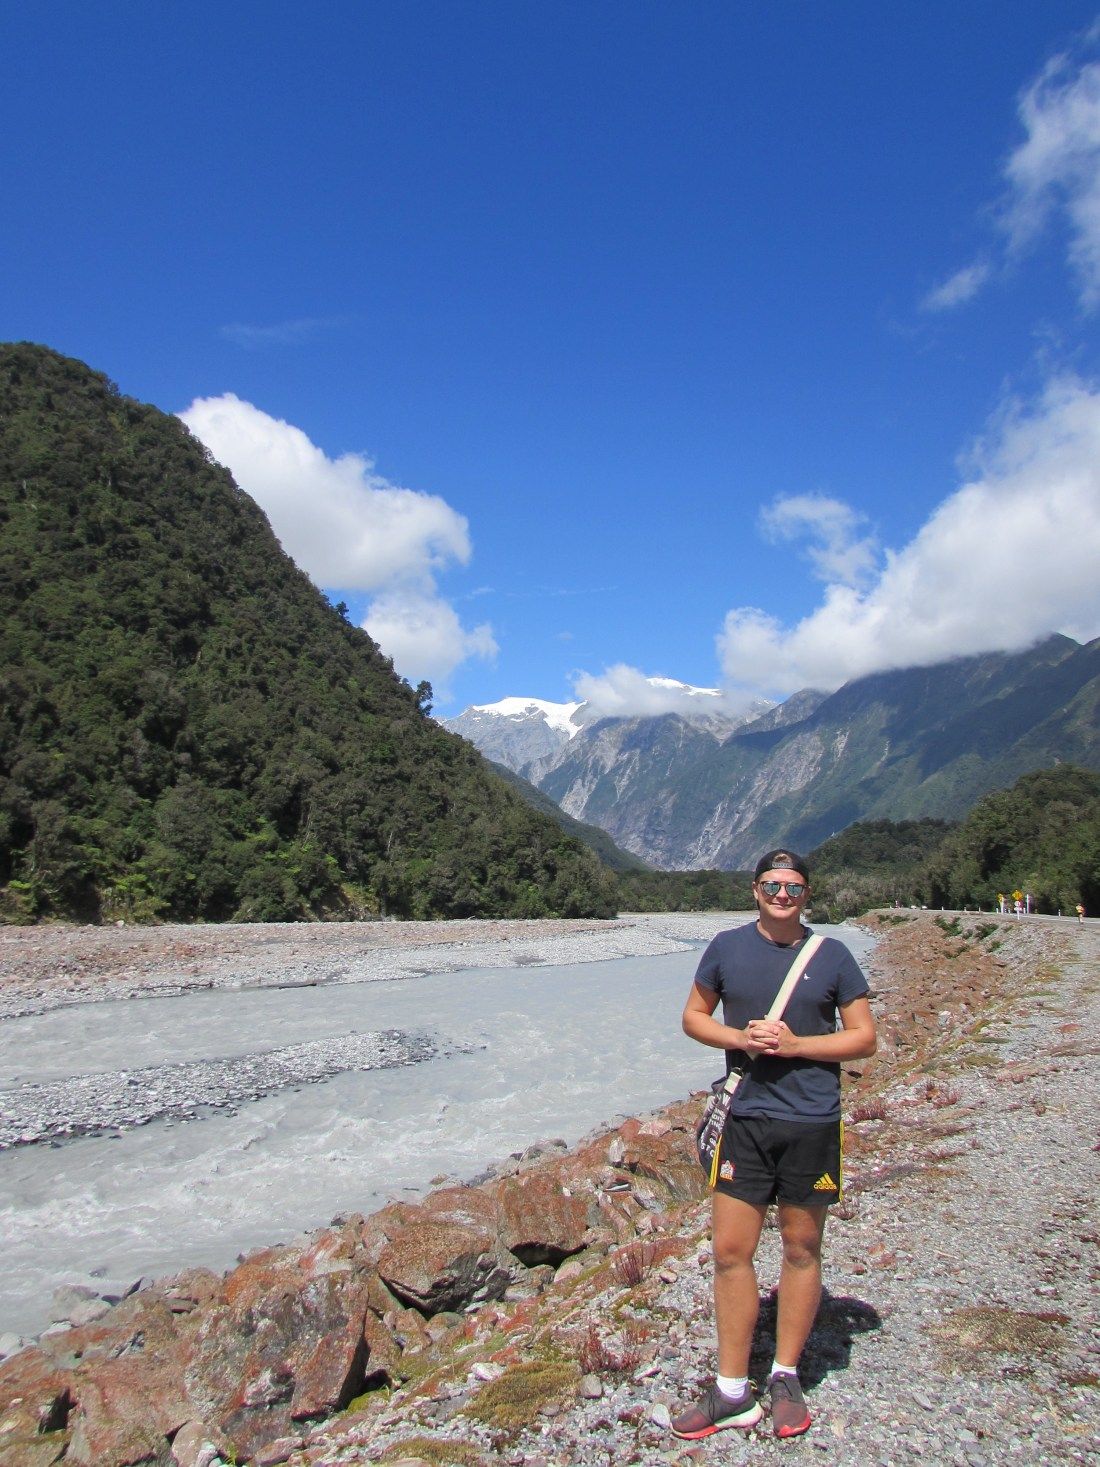 Mike in Franz Josef, New Zealand